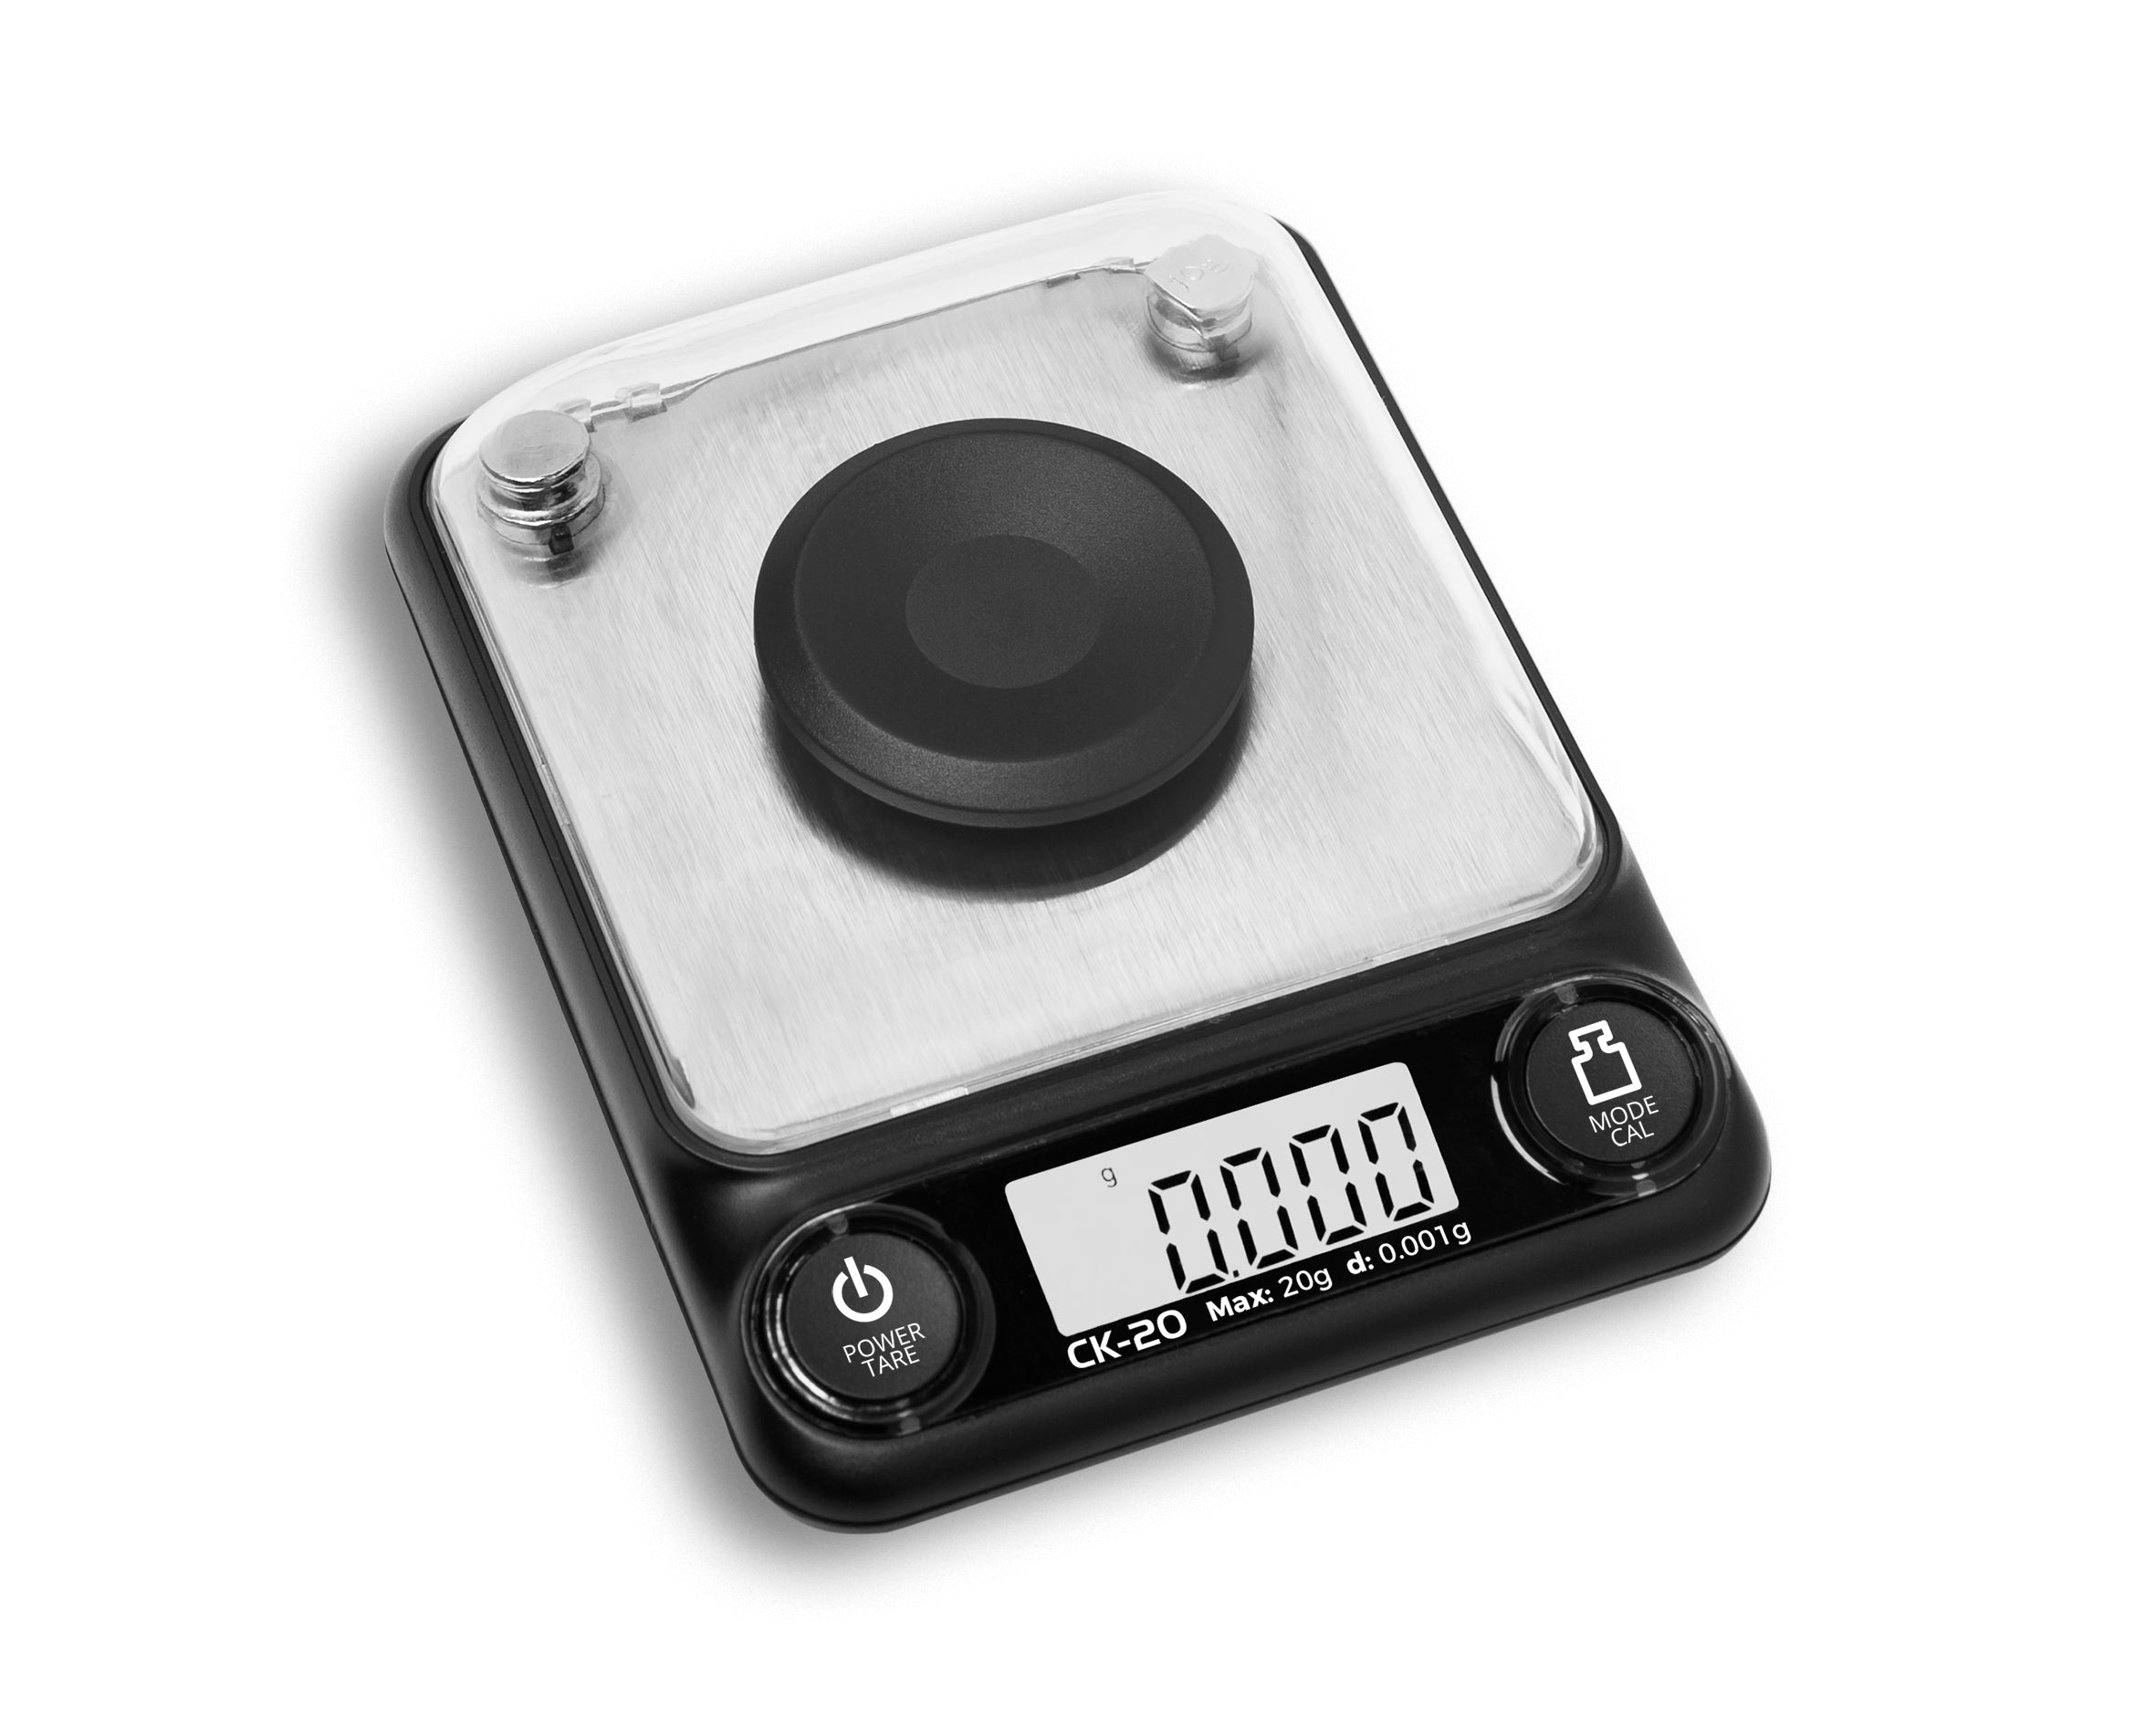 CK-20 On Balance Digital Milligram Scale 20g x 0.001g